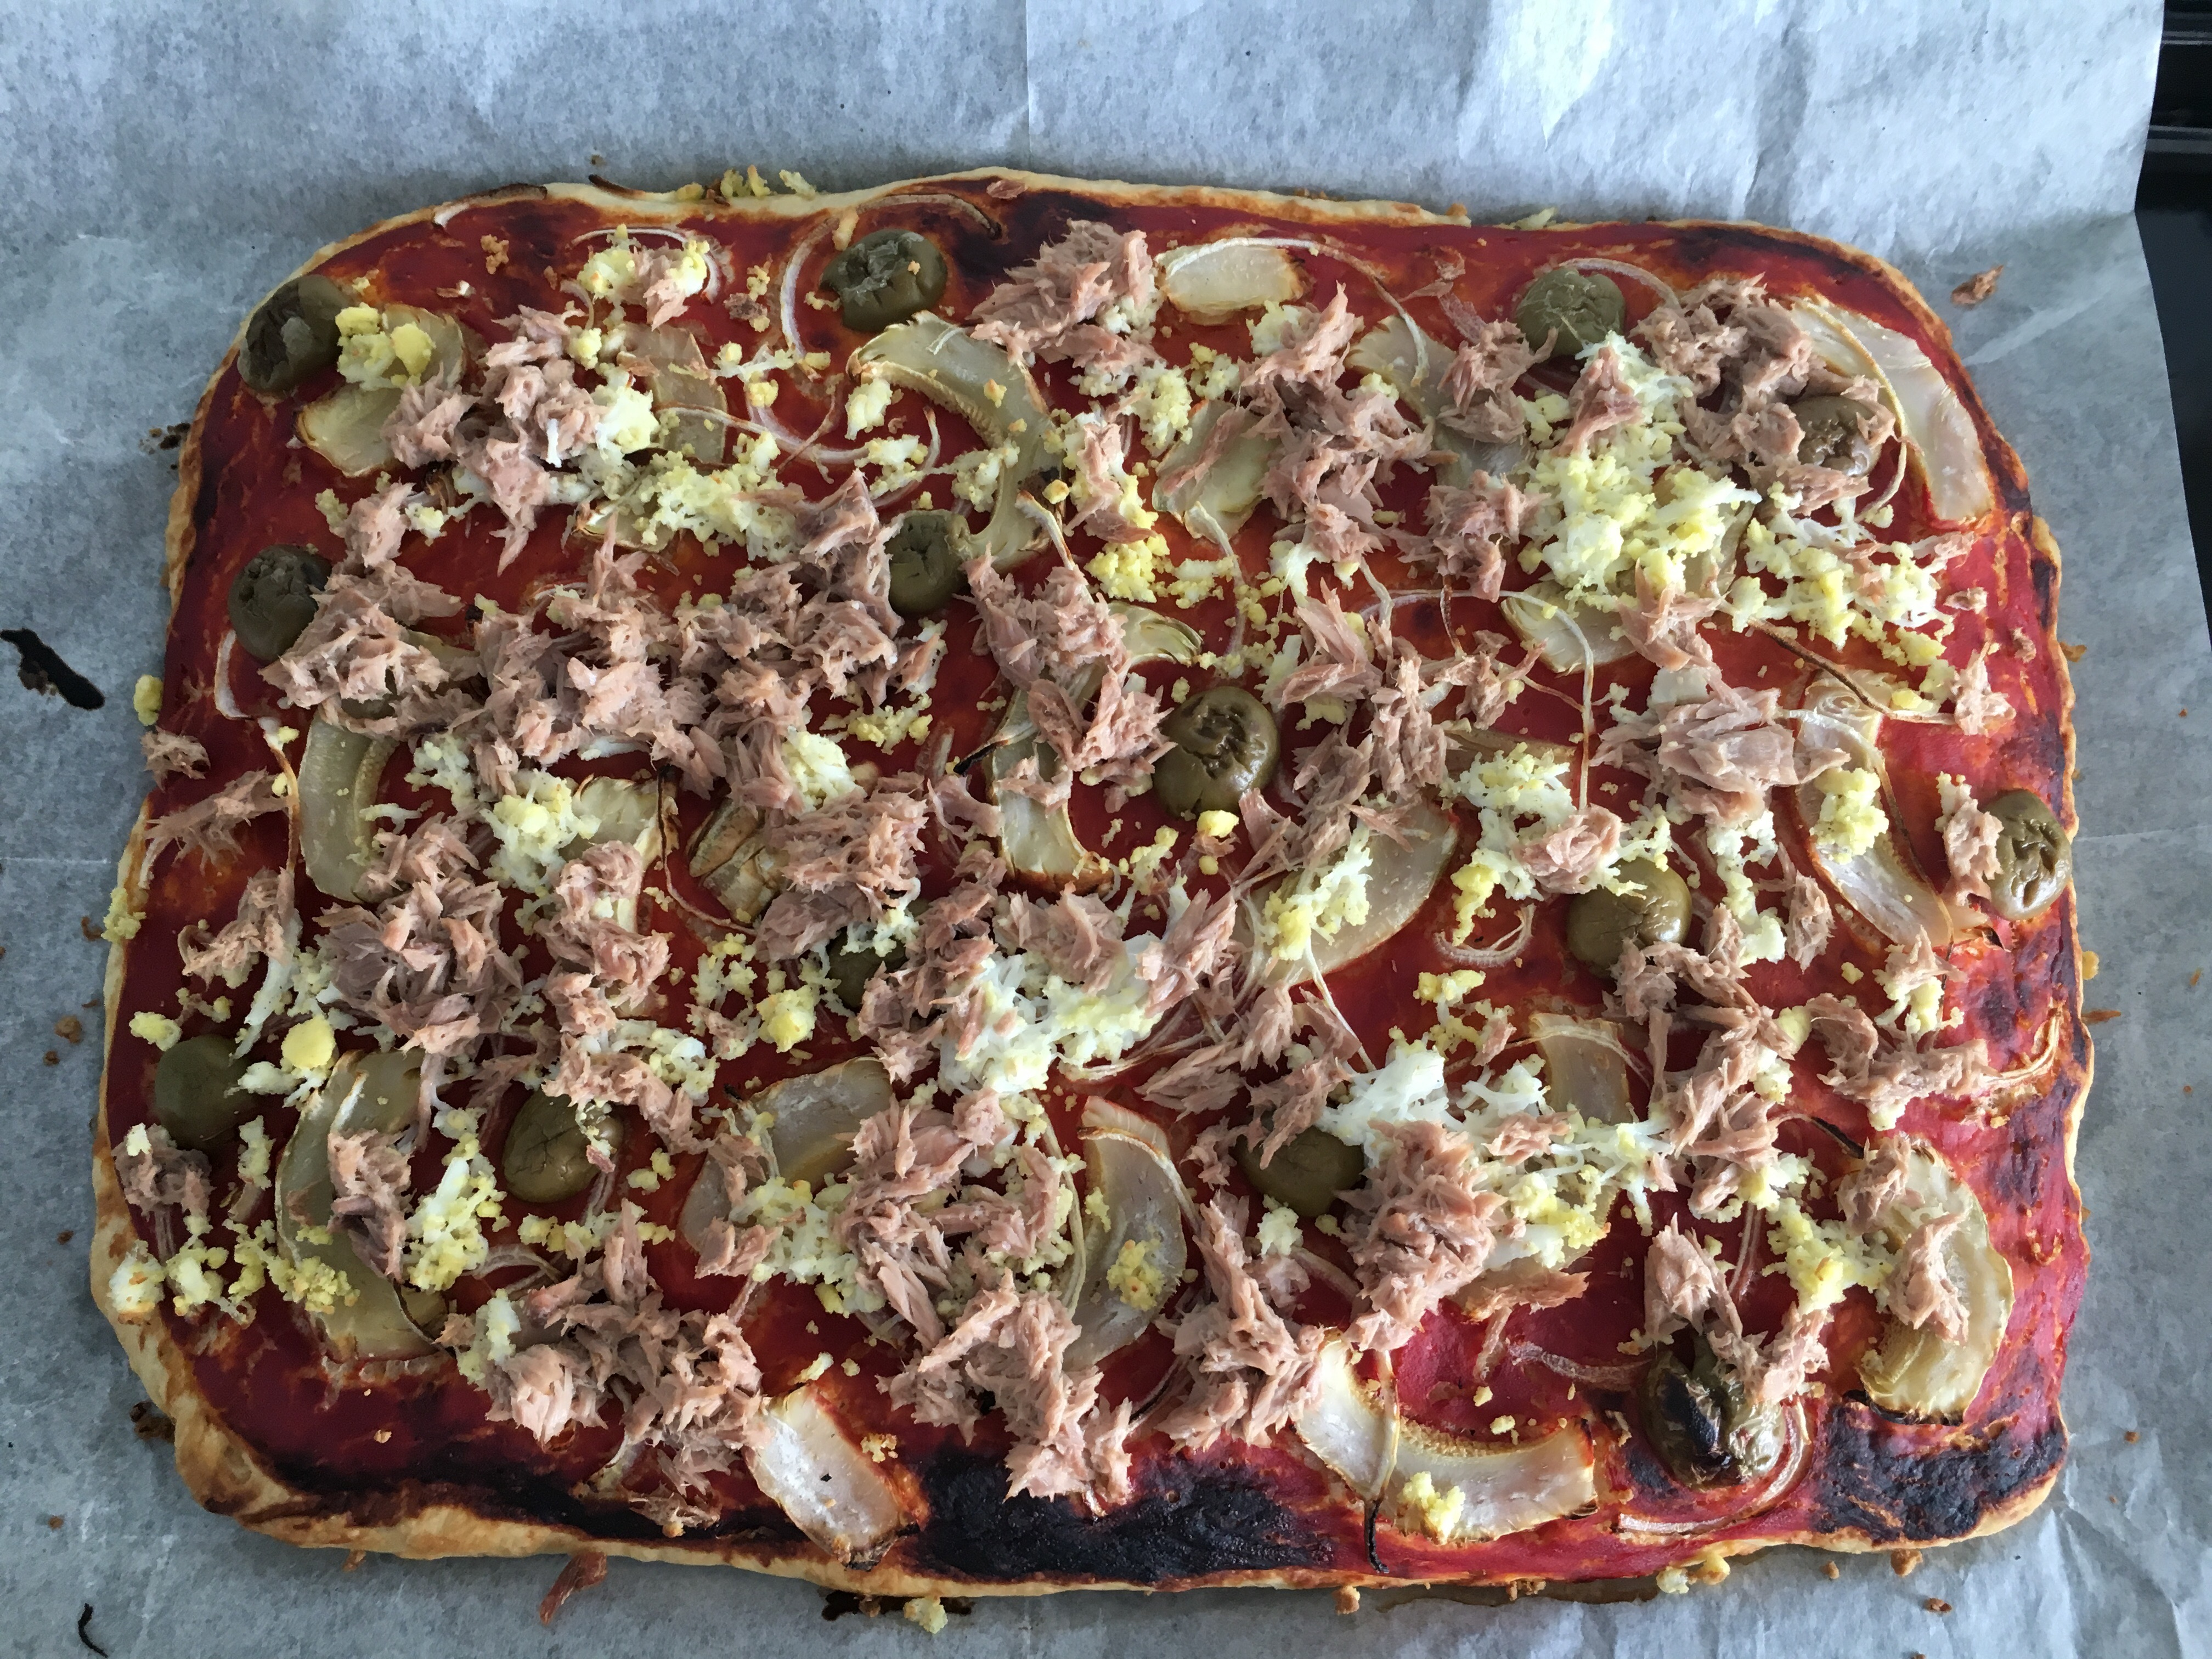 Pizza tunisienne - sans fromage